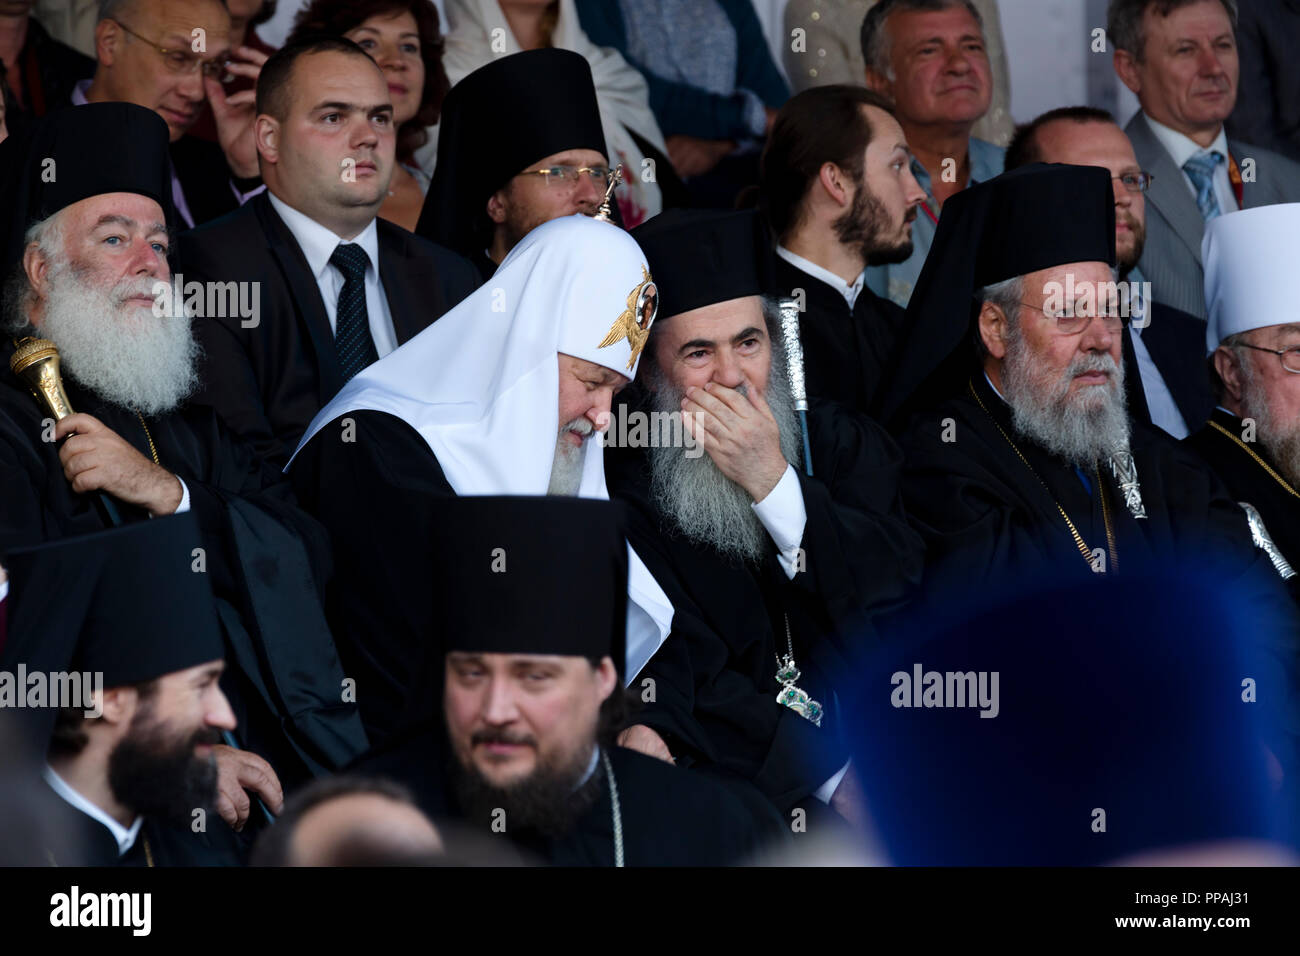 Patriarch Kirill of Moscow and All Russia at a concert marking Day of Slavic Written Language and Culture in Moscow's Red Square, Russia - Stock Image